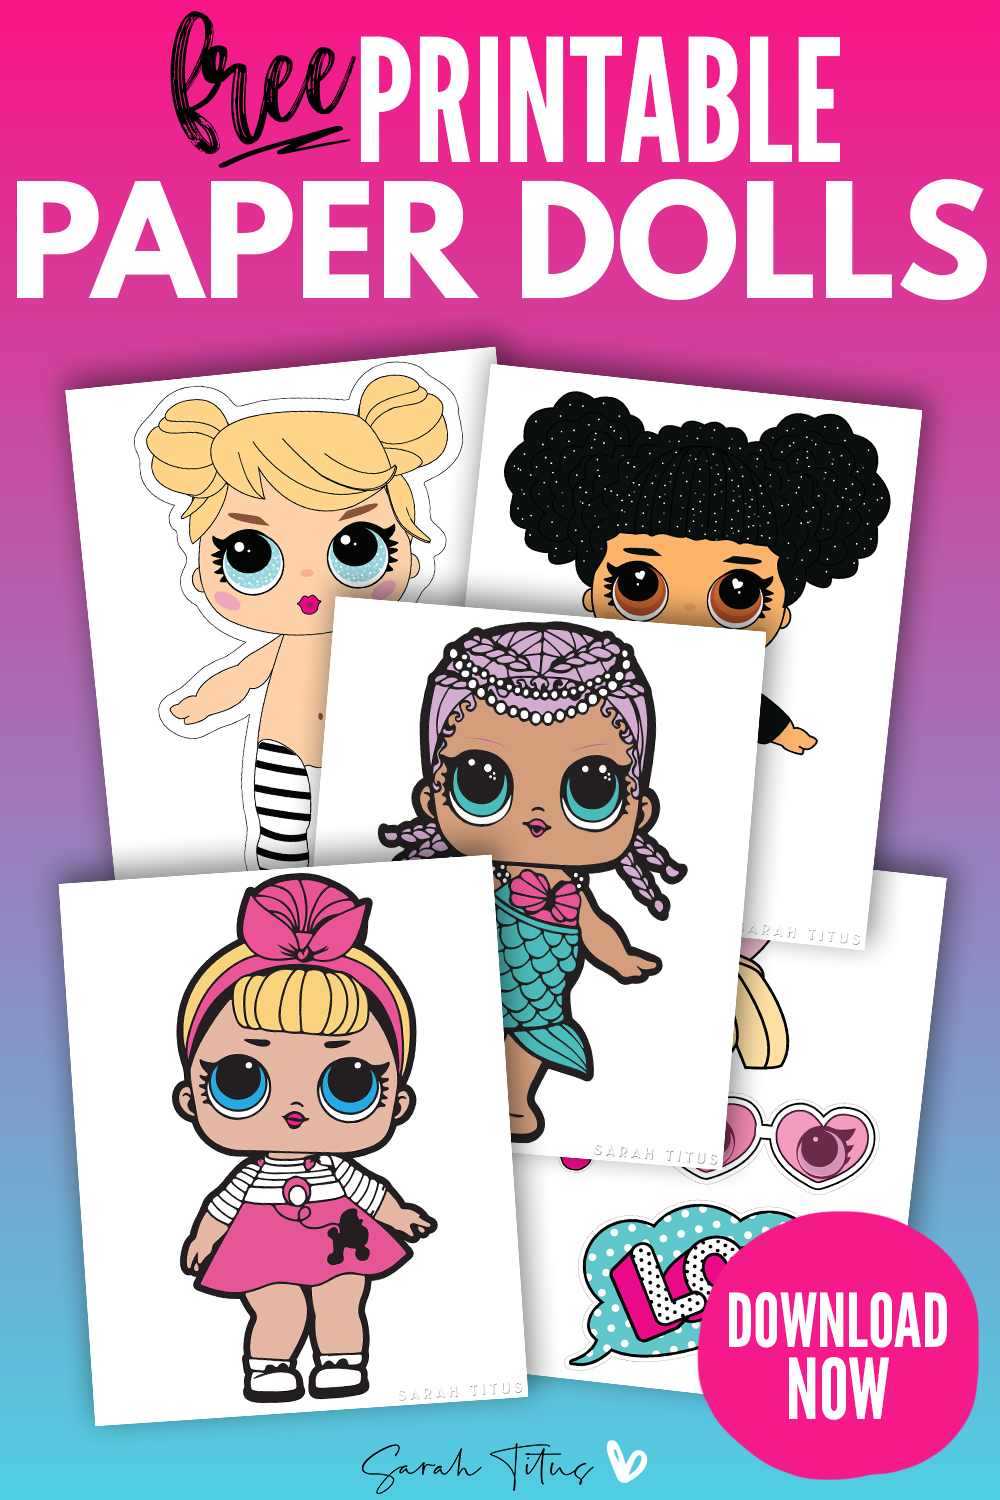 - Cute Paper Dolls Printable Free For Kids - Sarah Titus From